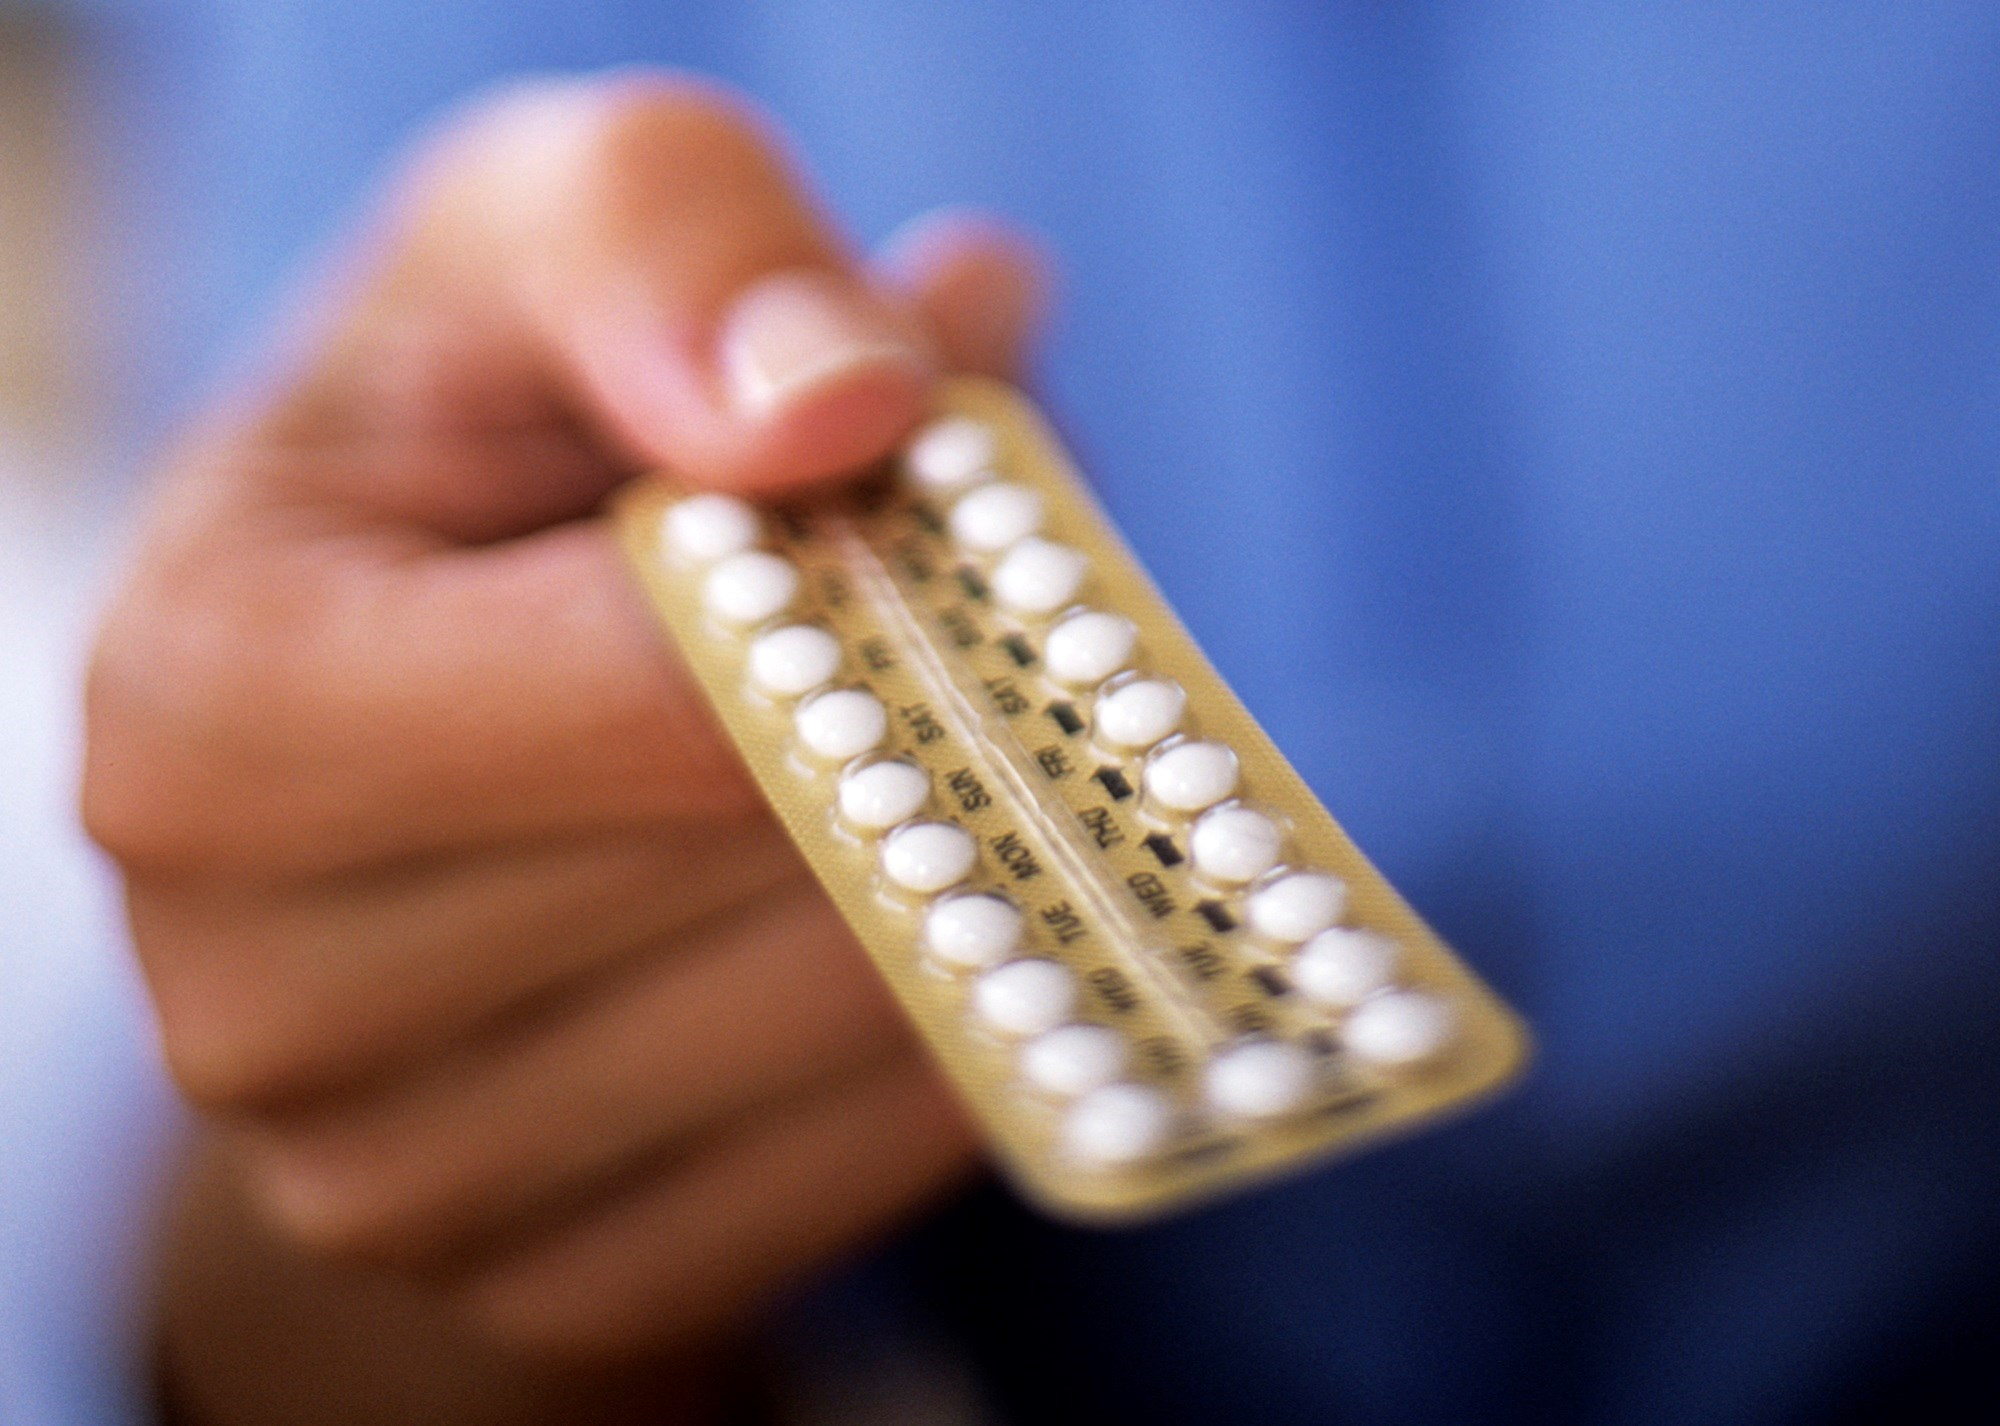 Safety and Efficacy of Dimethandrolone Undecanoate as Male Contraceptive Pill